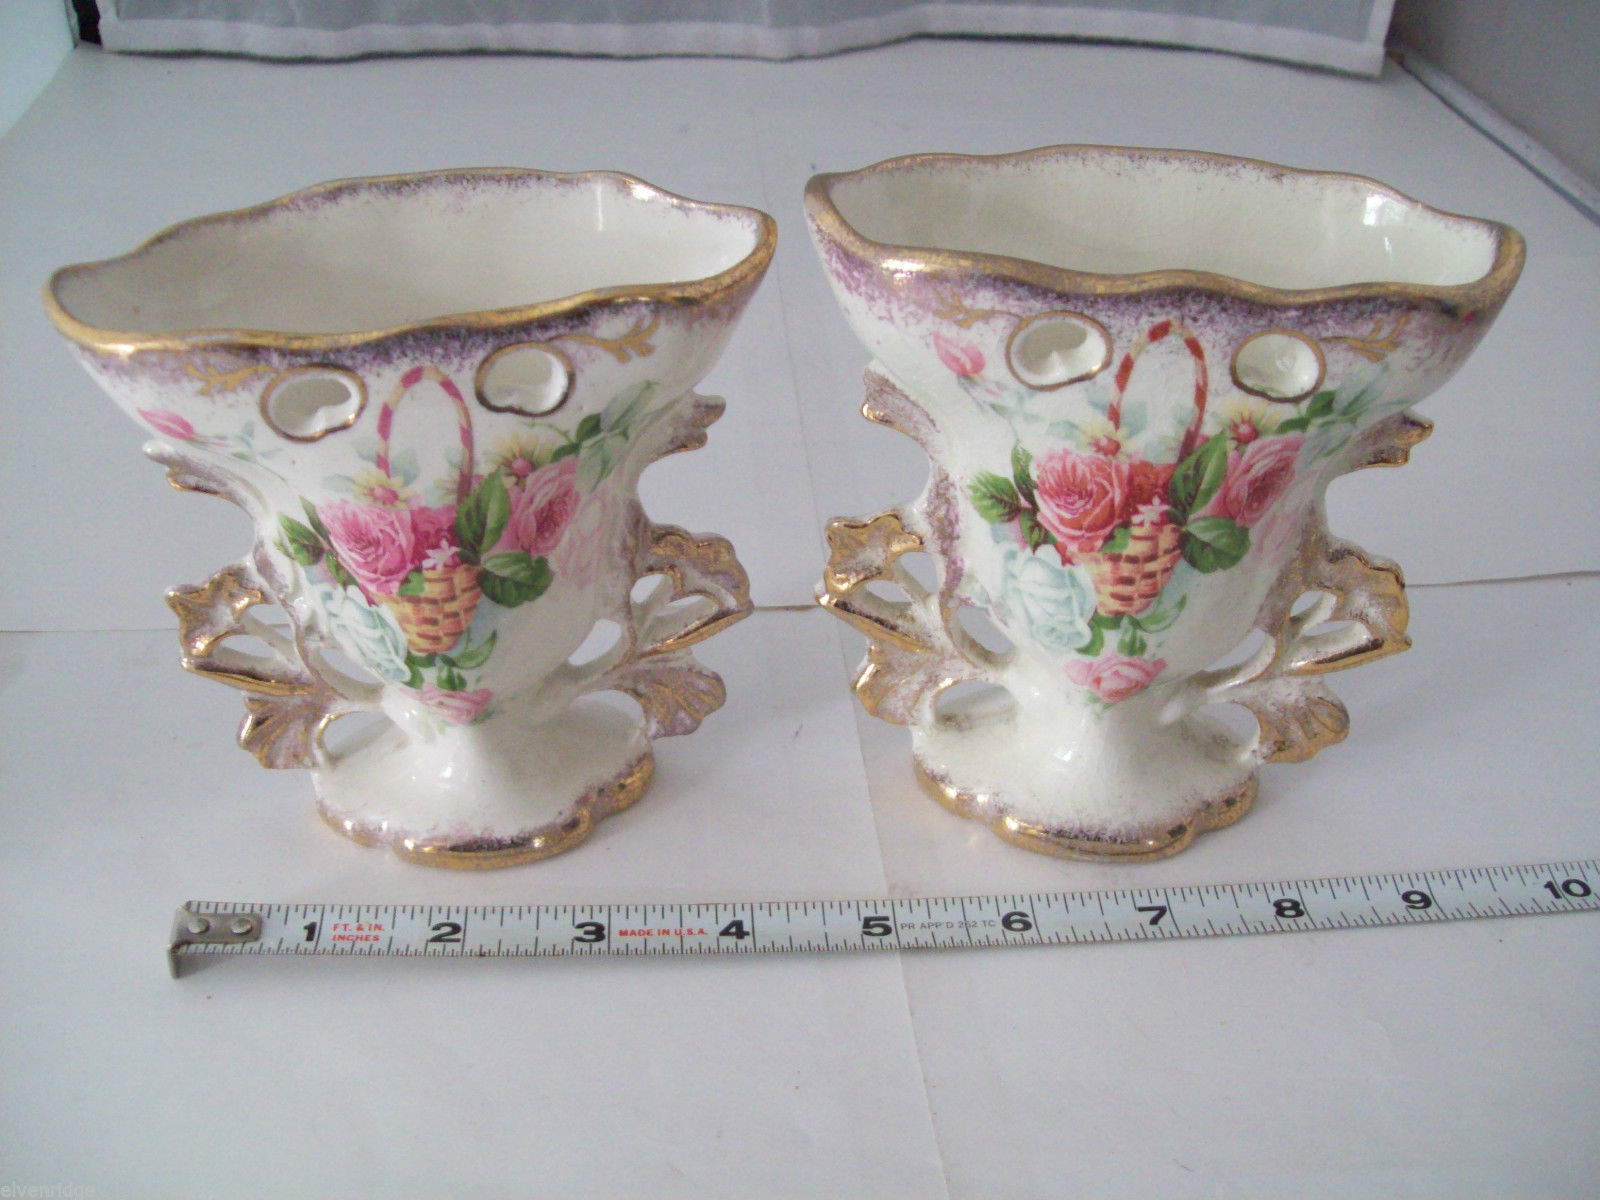 Made in England Miniature Vases in Porcelain with pink and white roses vintage